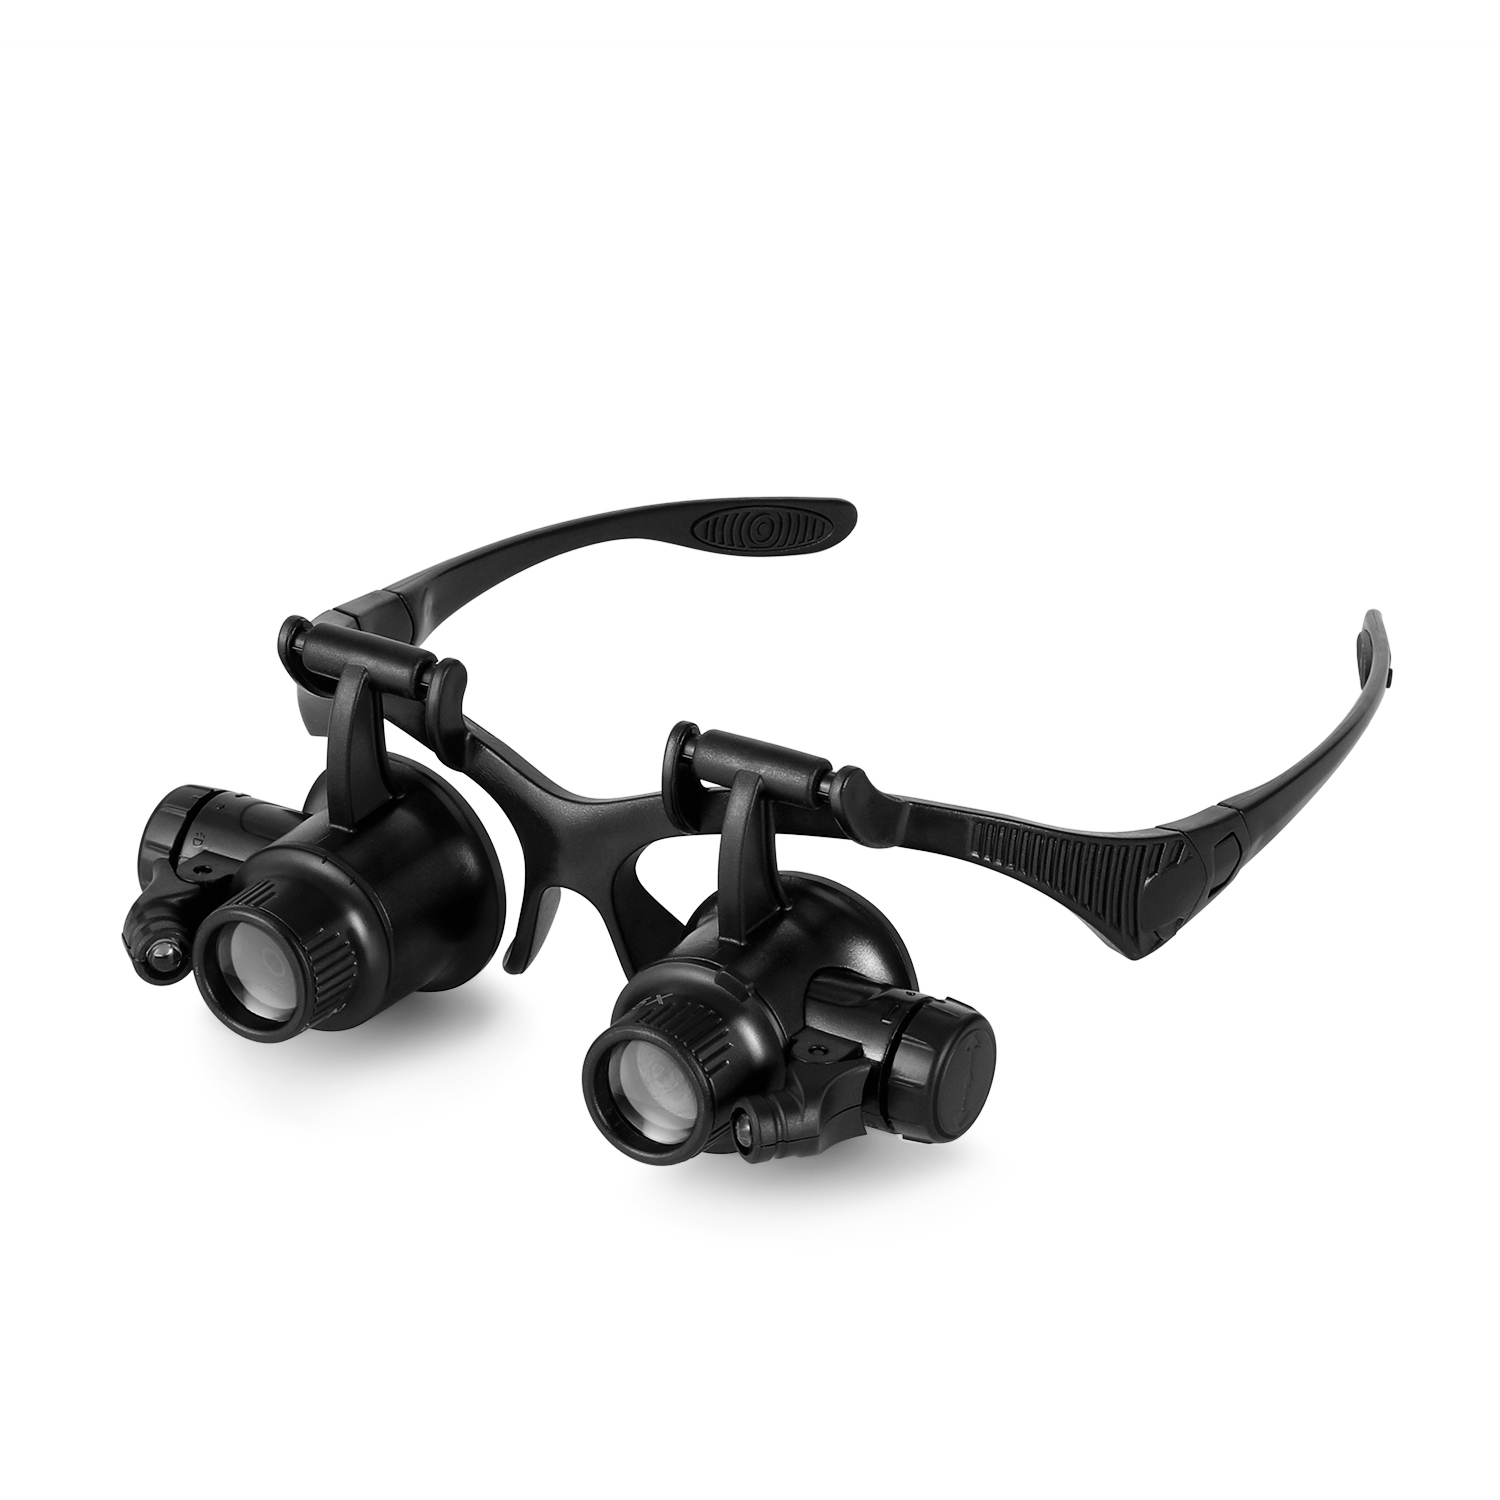 Head Mount Magnifier With Led Light Lightweight